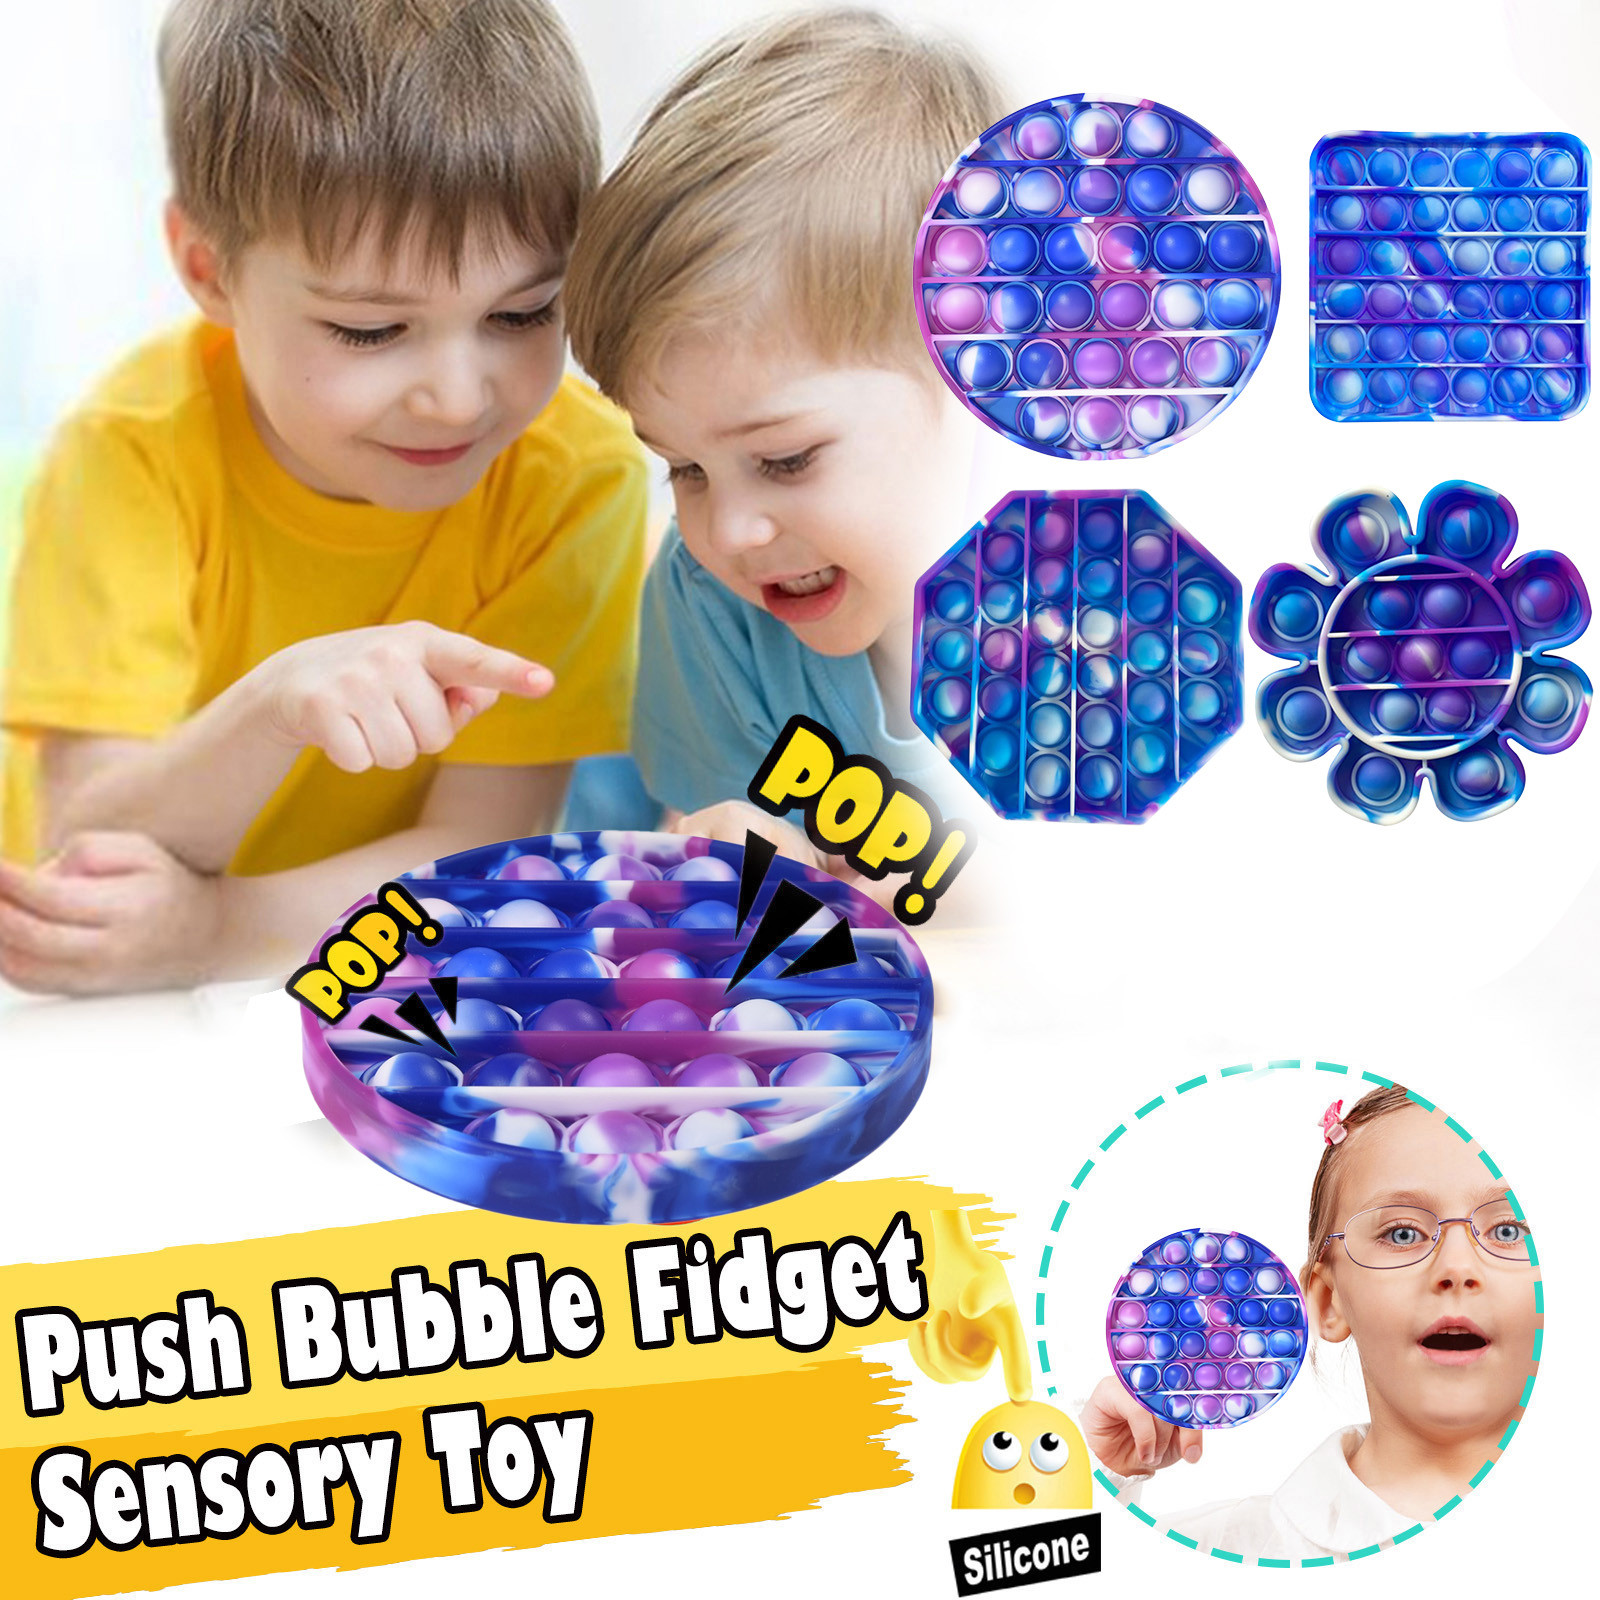 Fitget-Toys Sensory-Toy Autism Fidget Needs-Stress Push Bubble Popoit Special Reliever img3